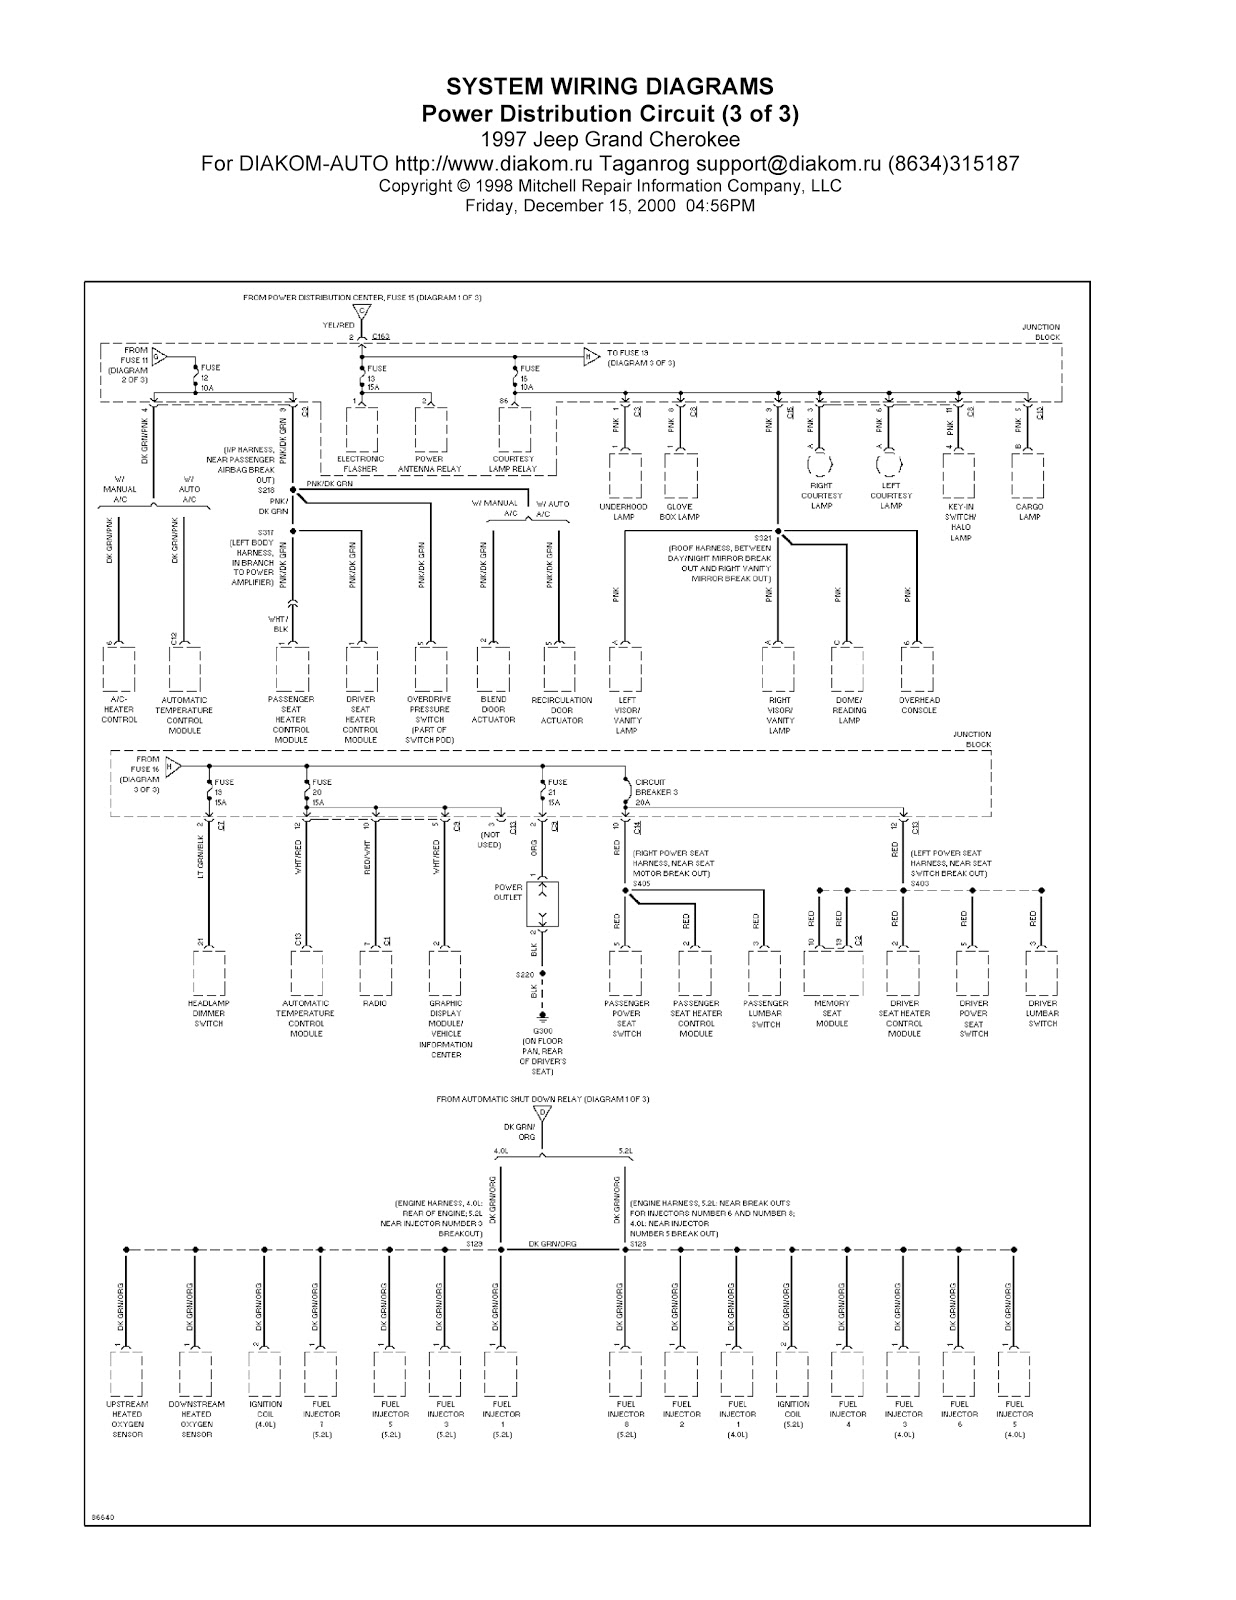 1997 Jeep Grand Cherokee System Wiring Diagram Power Distribution Circuit